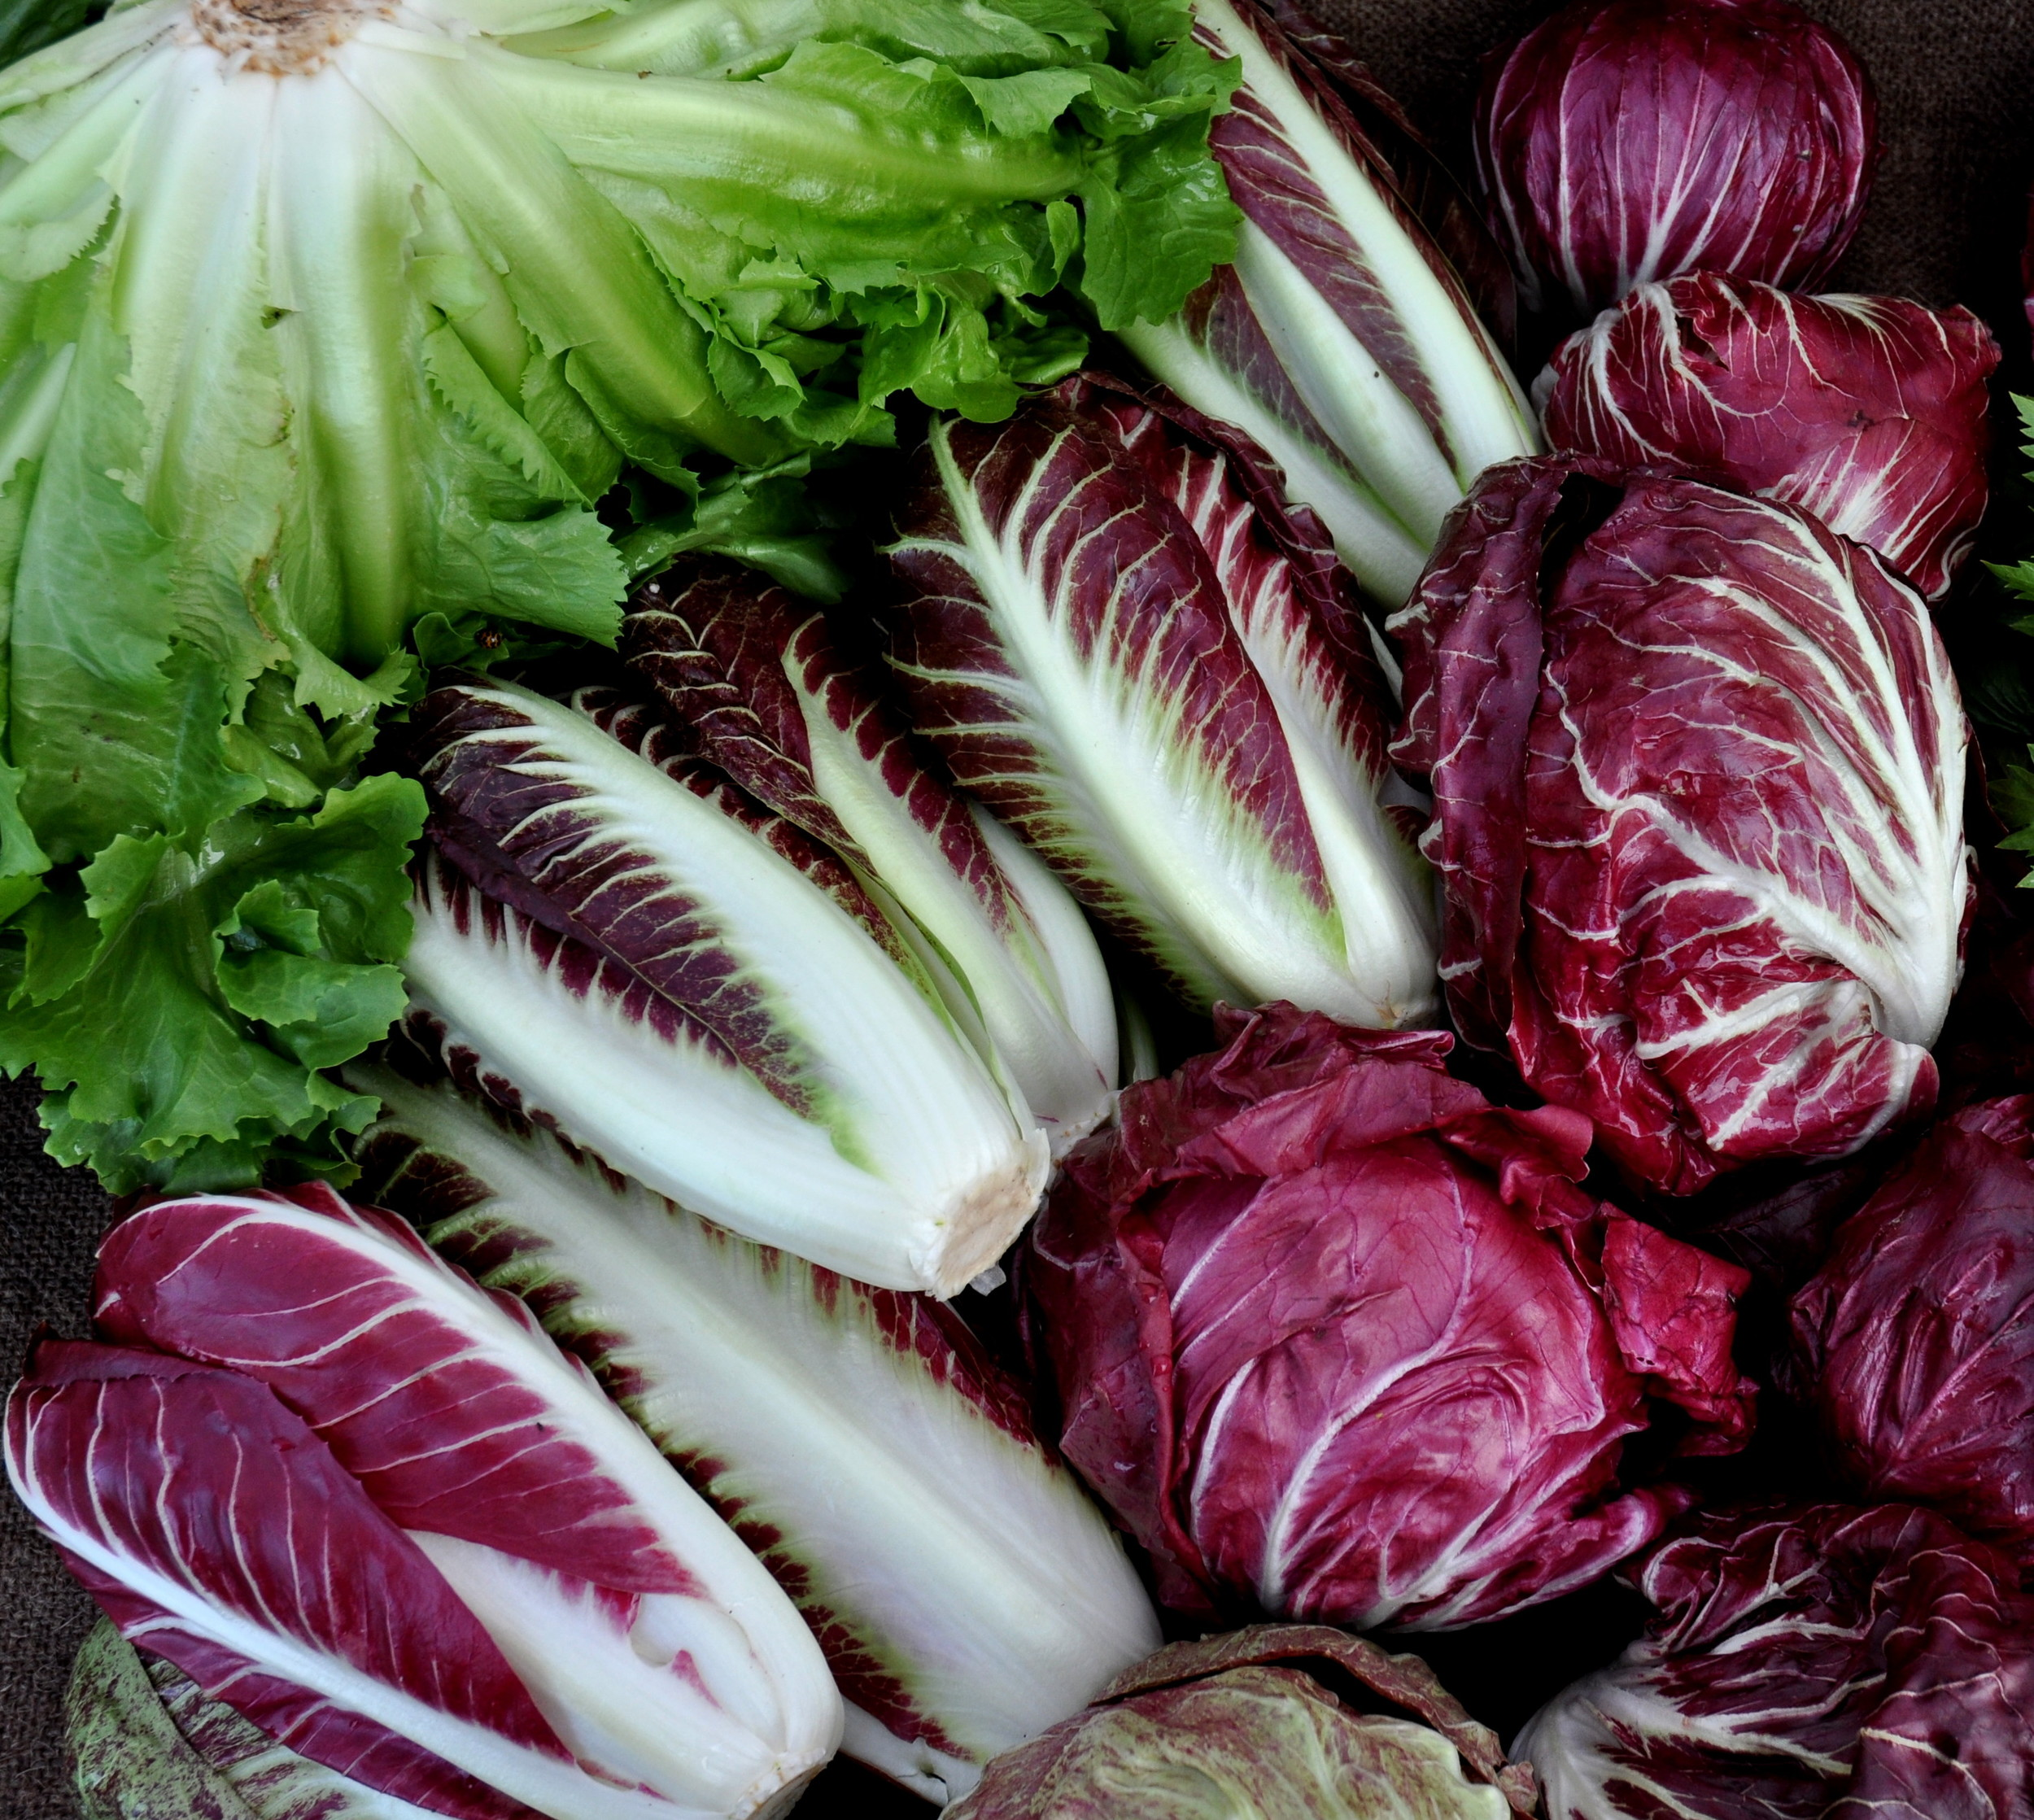 Chicories from One Leaf Farm. Photo copyright 2012 by Zachary D. Lyons.